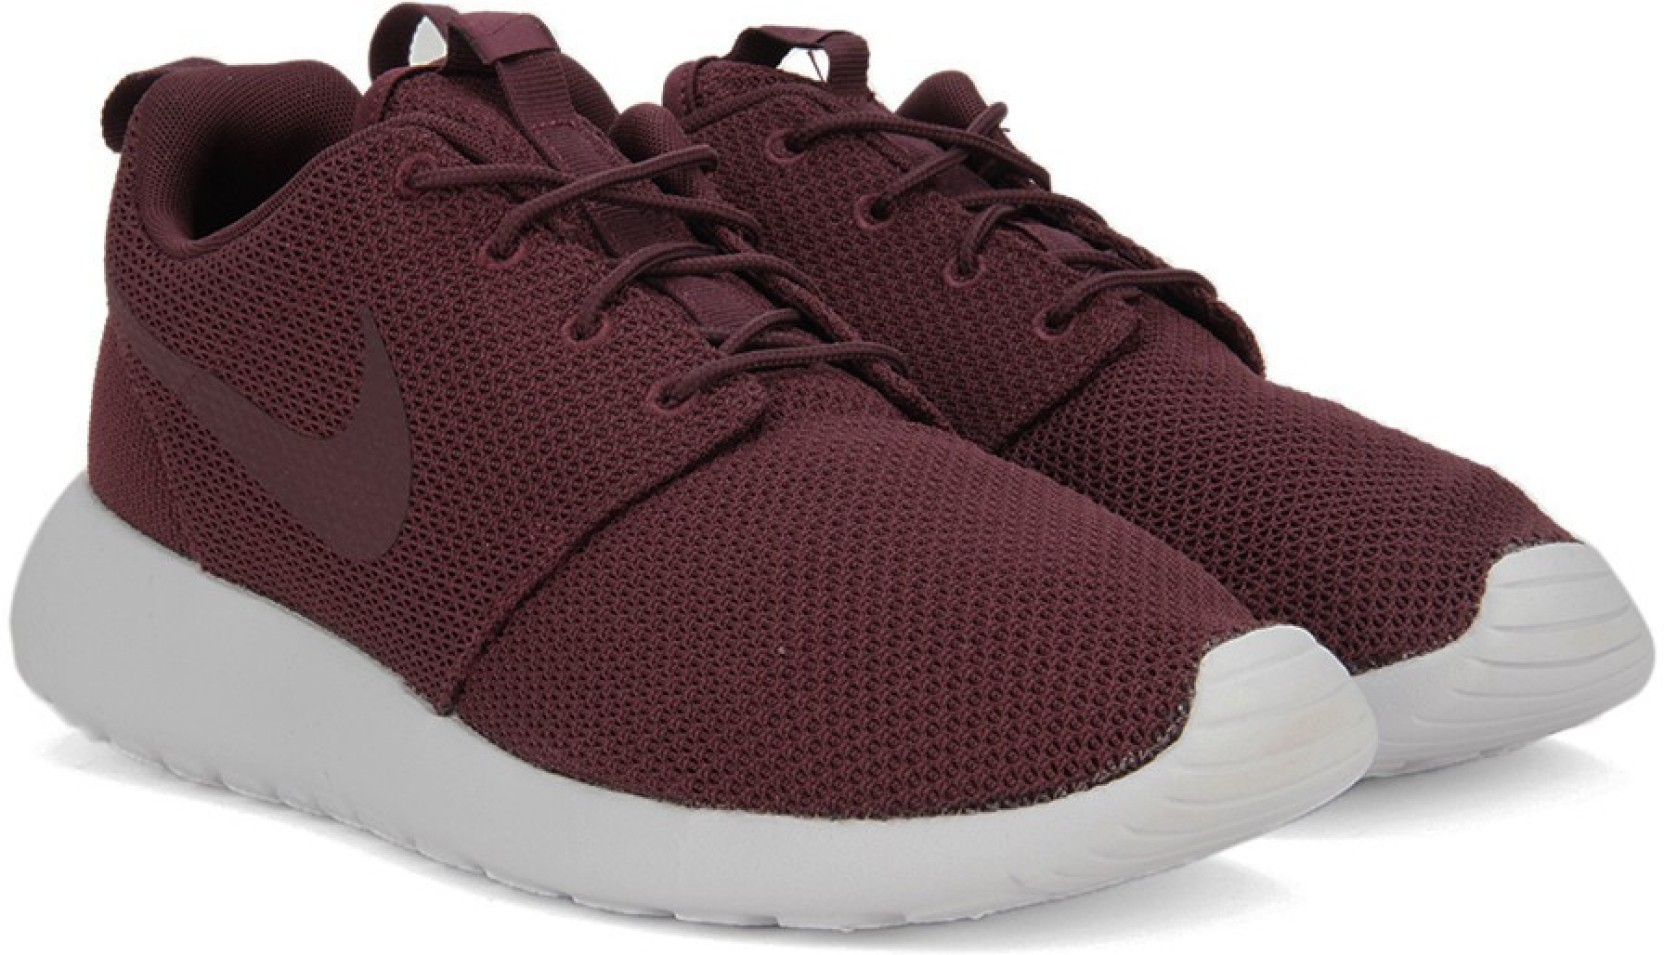 f27eb469875a ... nike roshe one sneakers for men (burgundy)